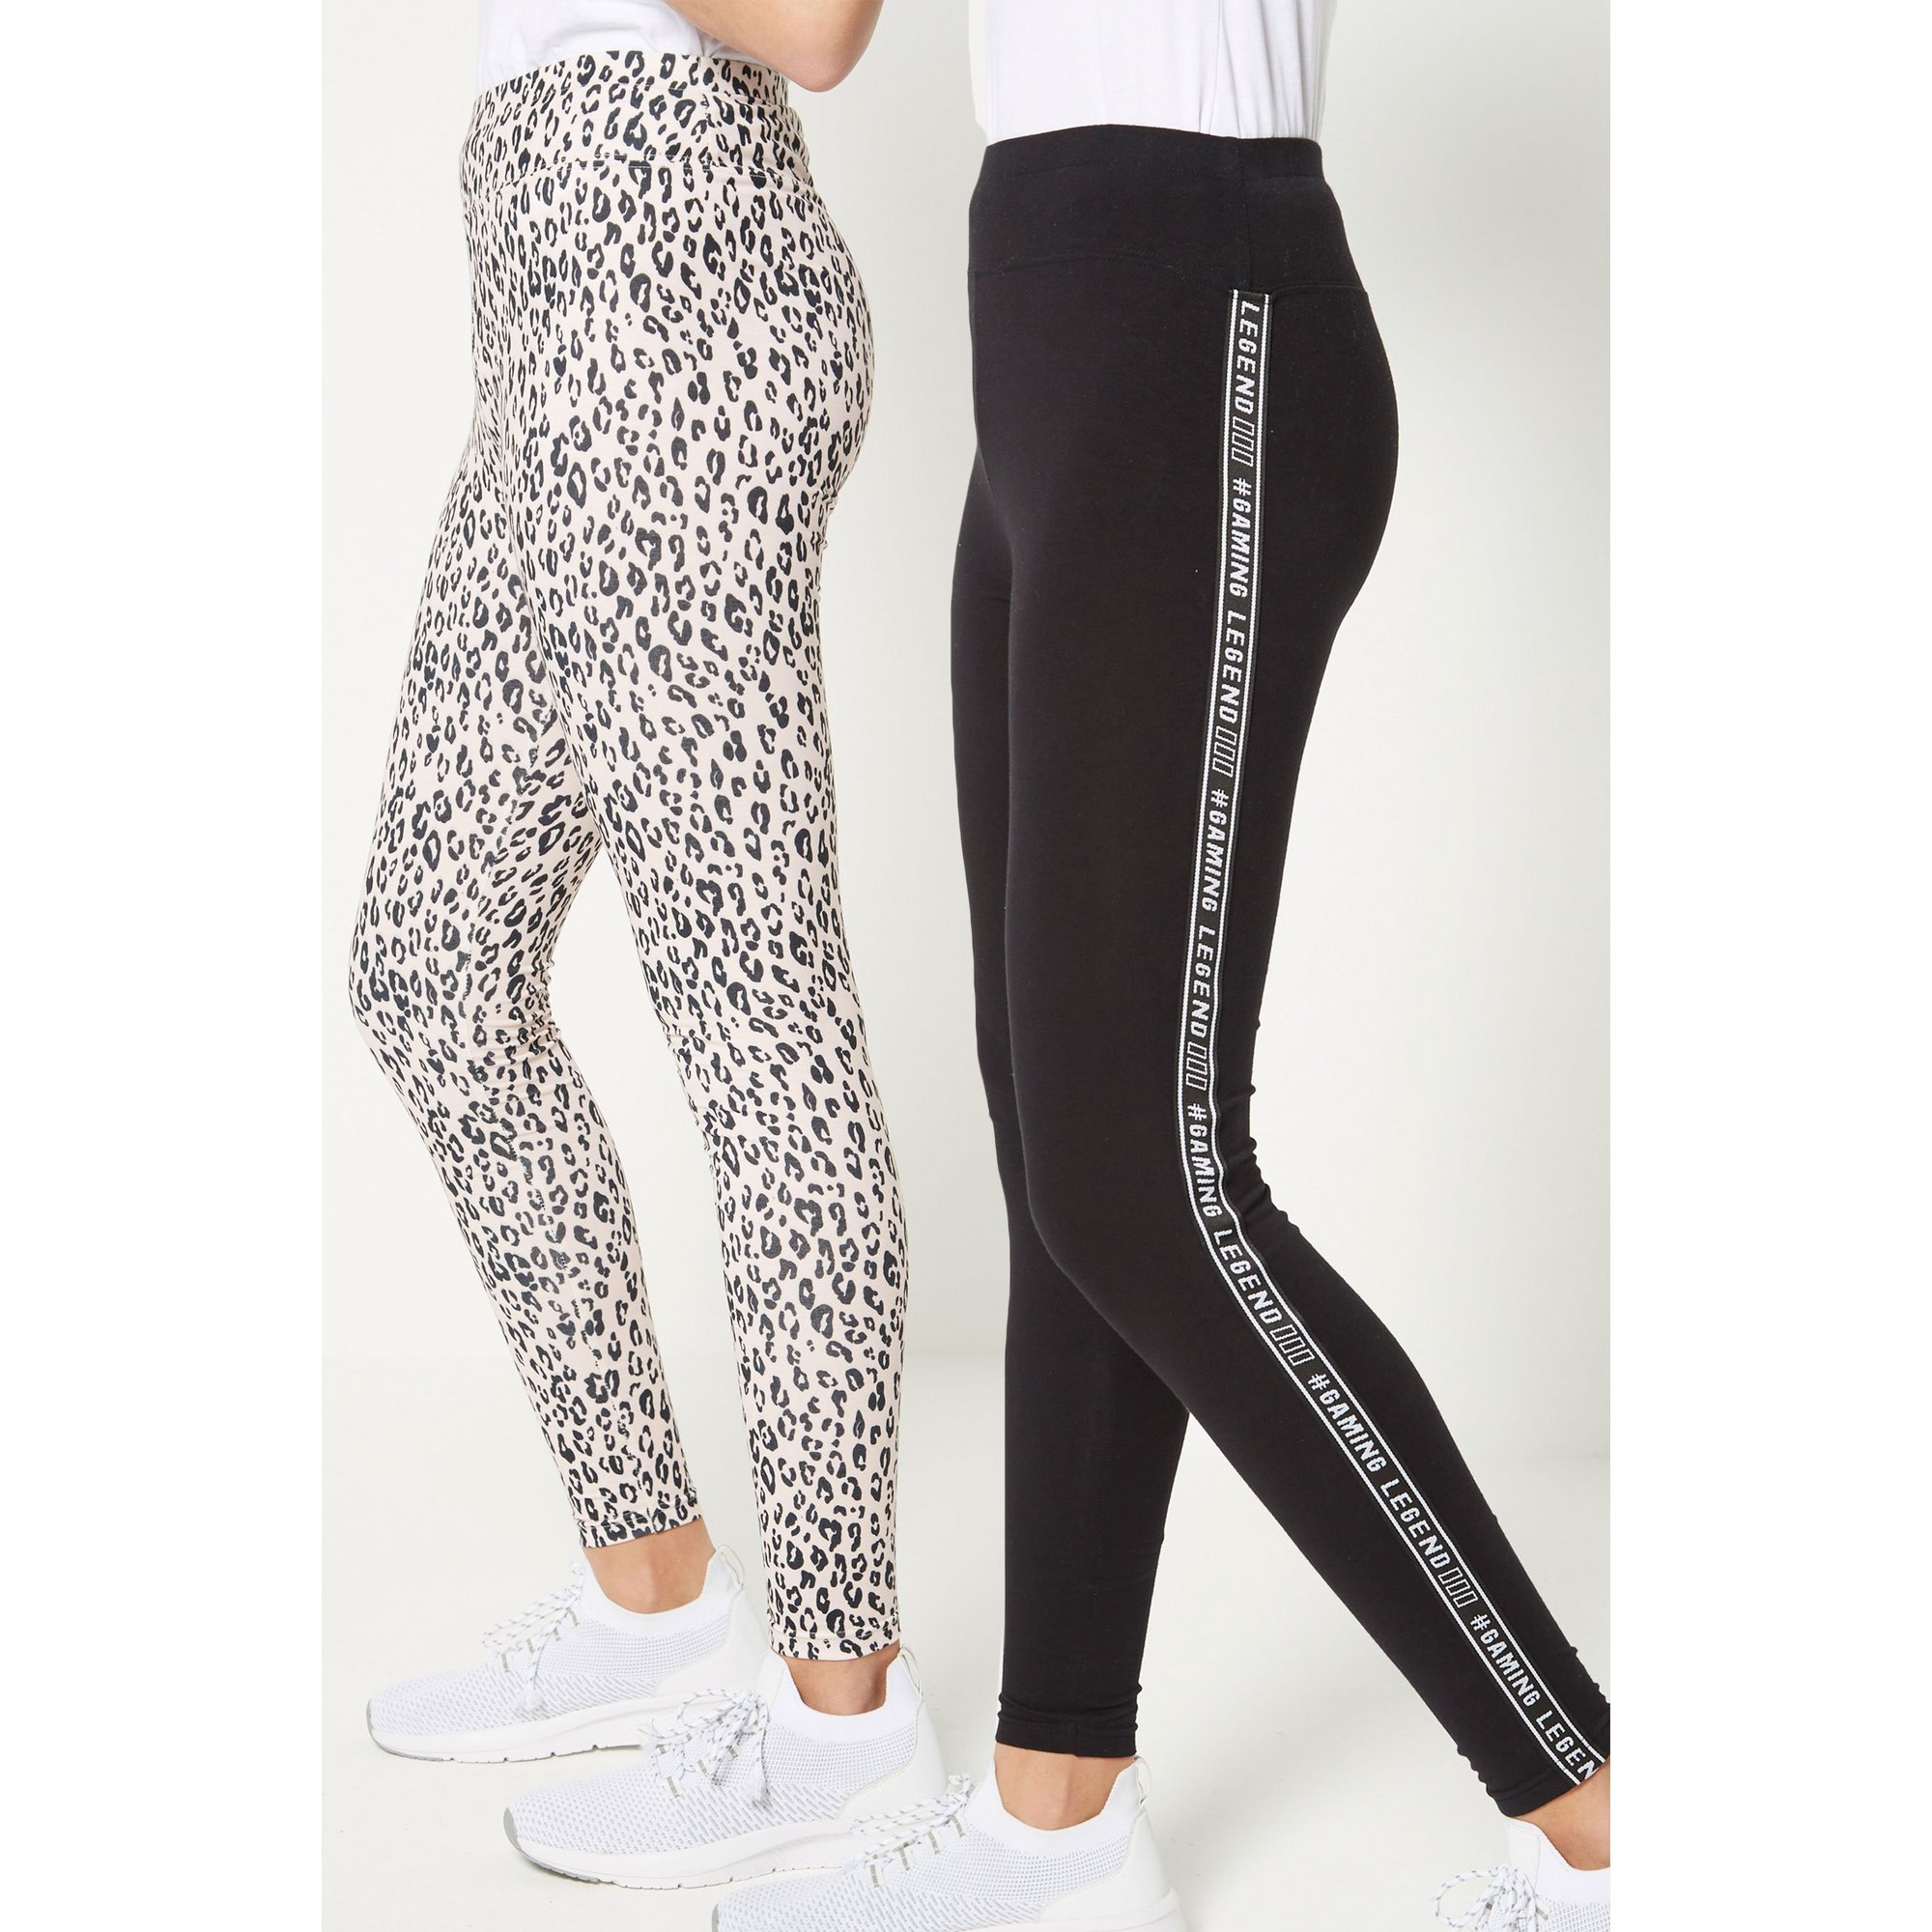 Image of Couture Angels Pack of 2 Black/Leopard Pearl Leggings